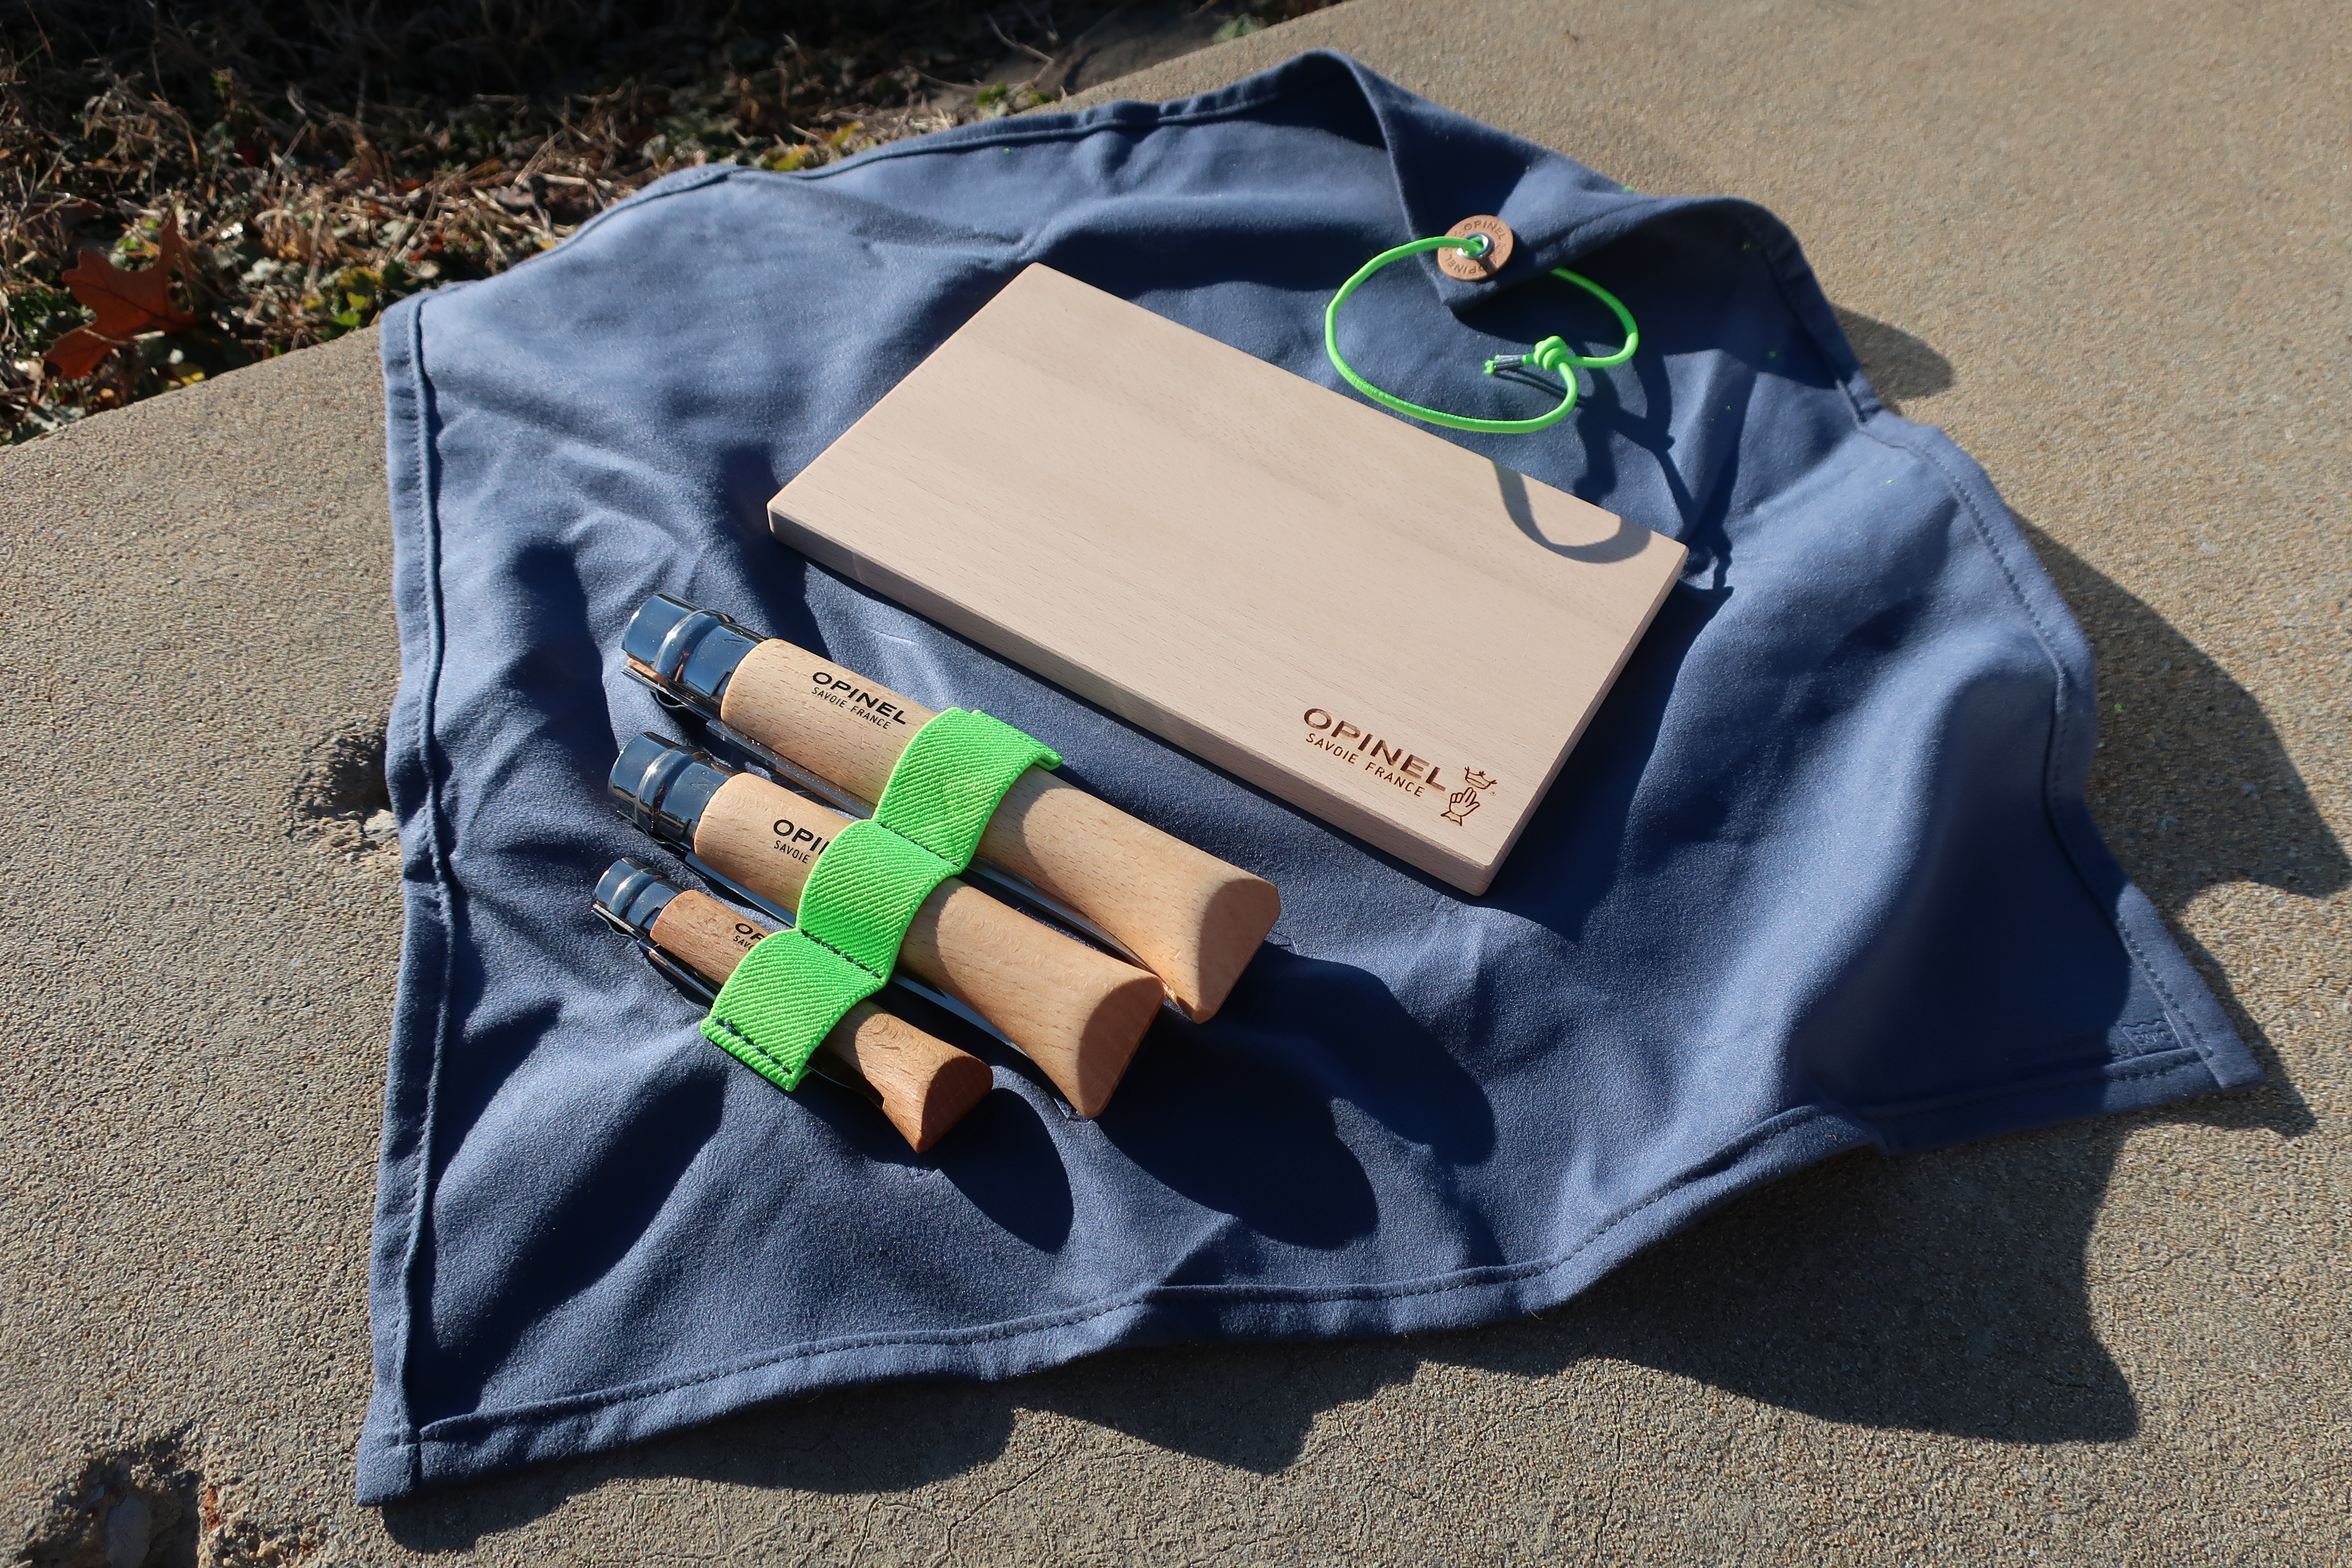 Opinel Nomad Cooking Kit